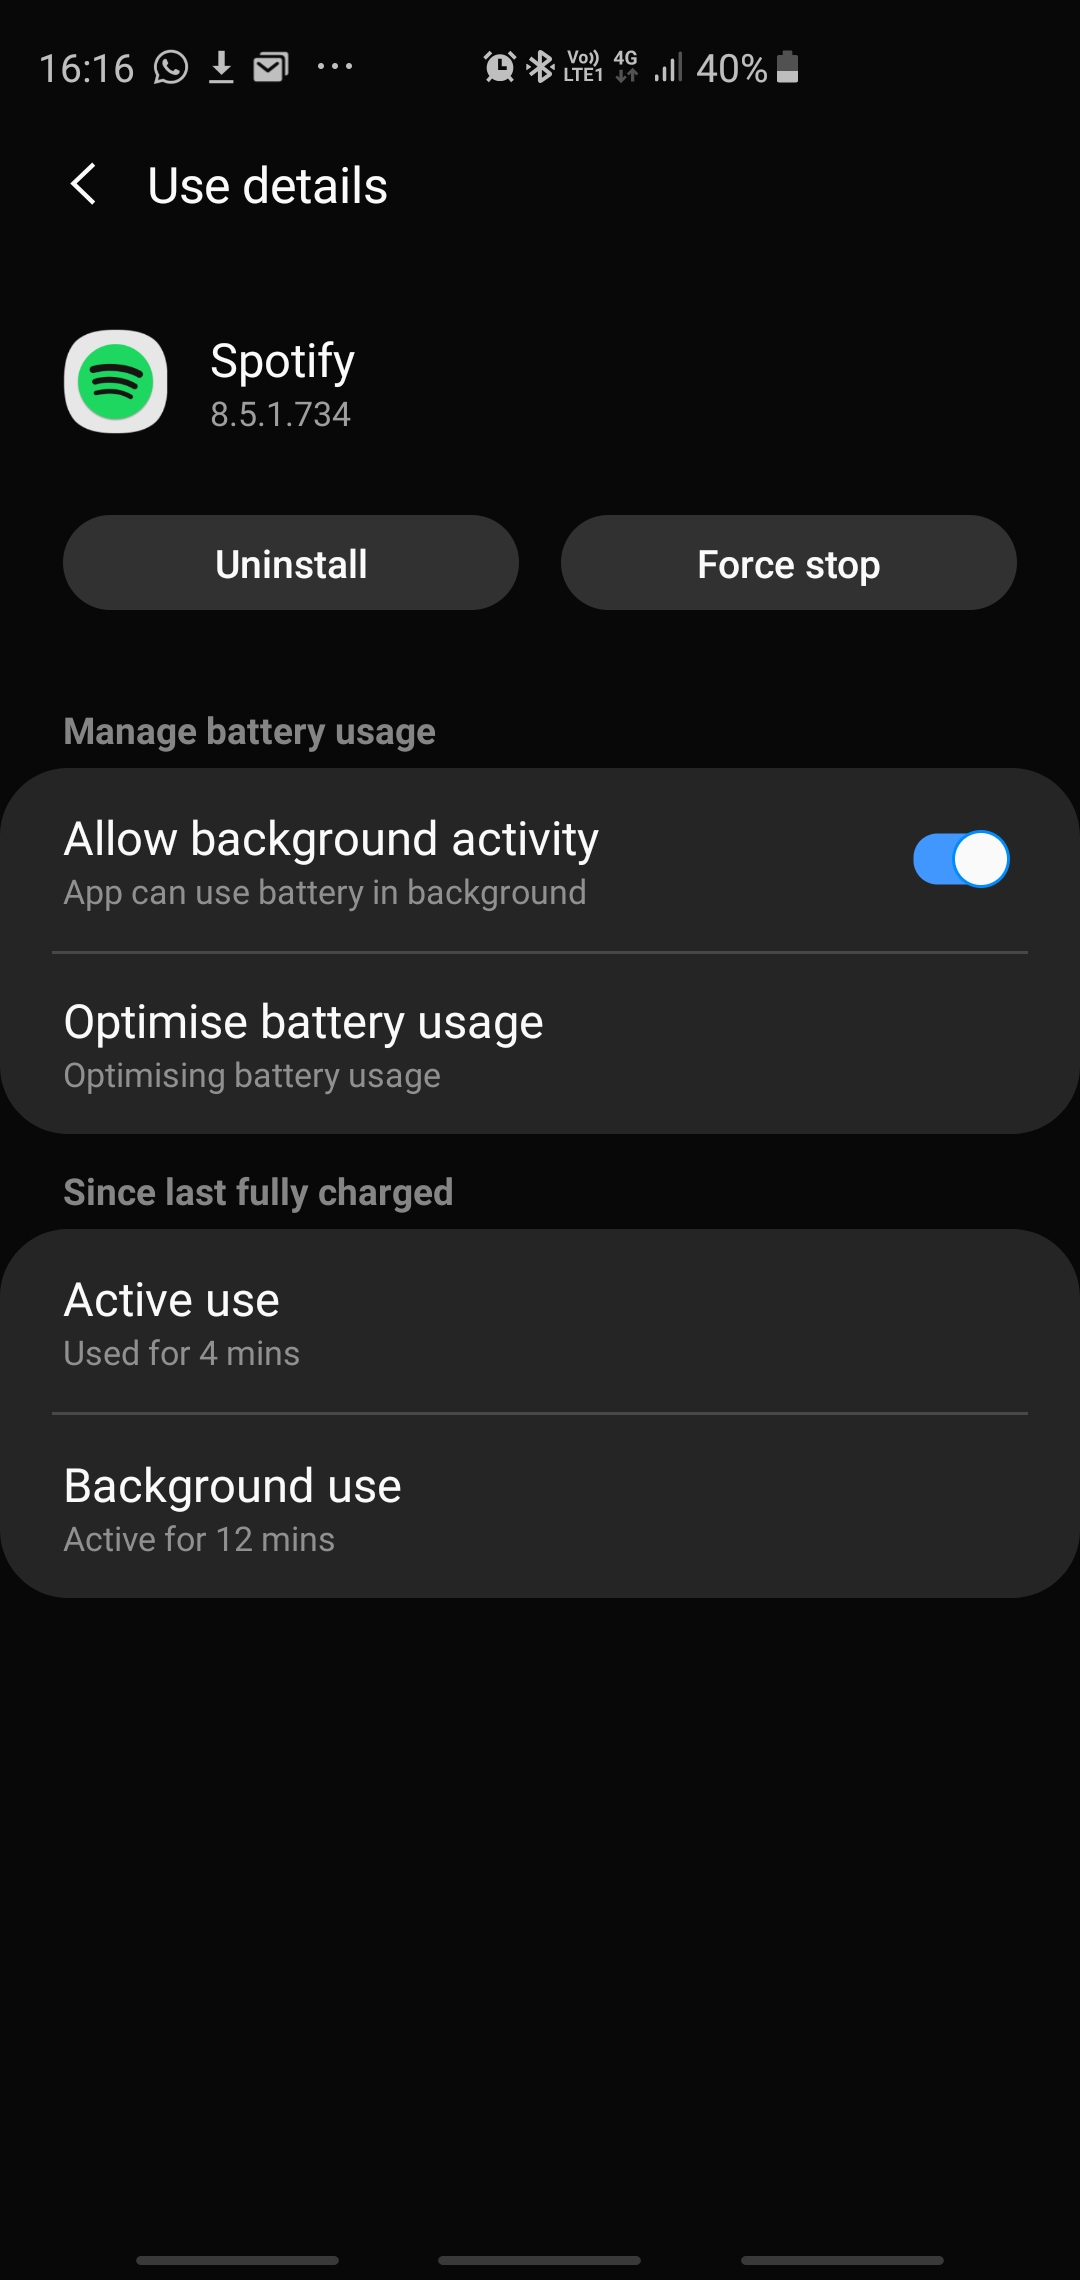 Samsung s10 using earbud keeps pausing - The Spotify Community